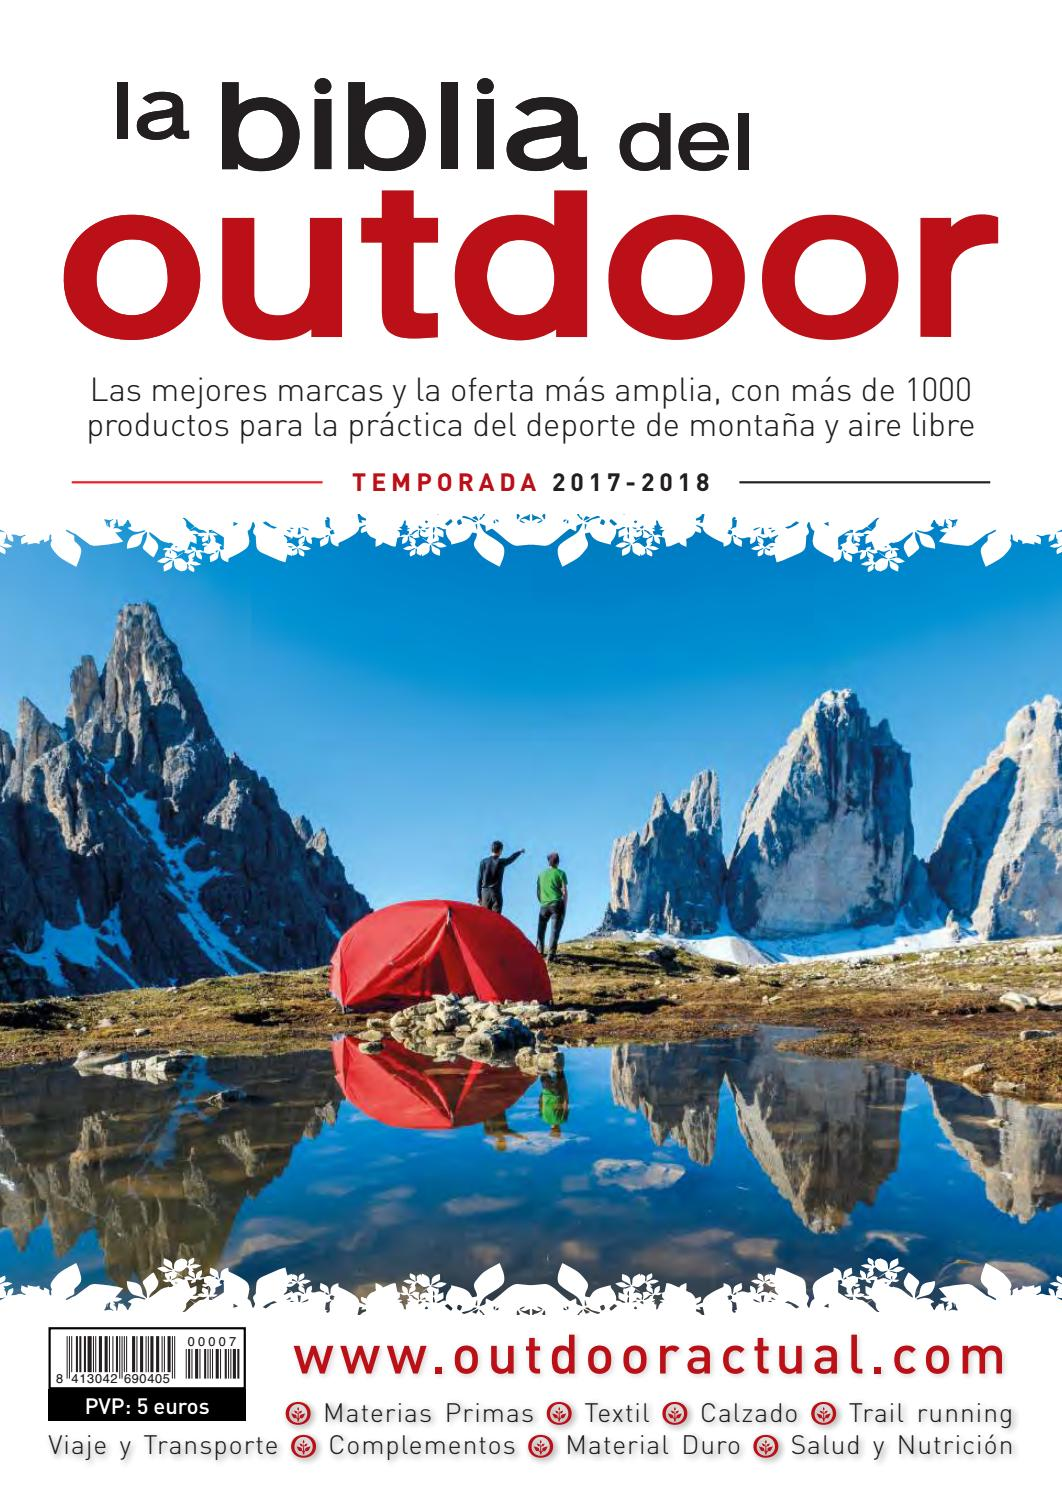 La Biblia del Outdoor 2017 18 by Outdoor Actual issuu